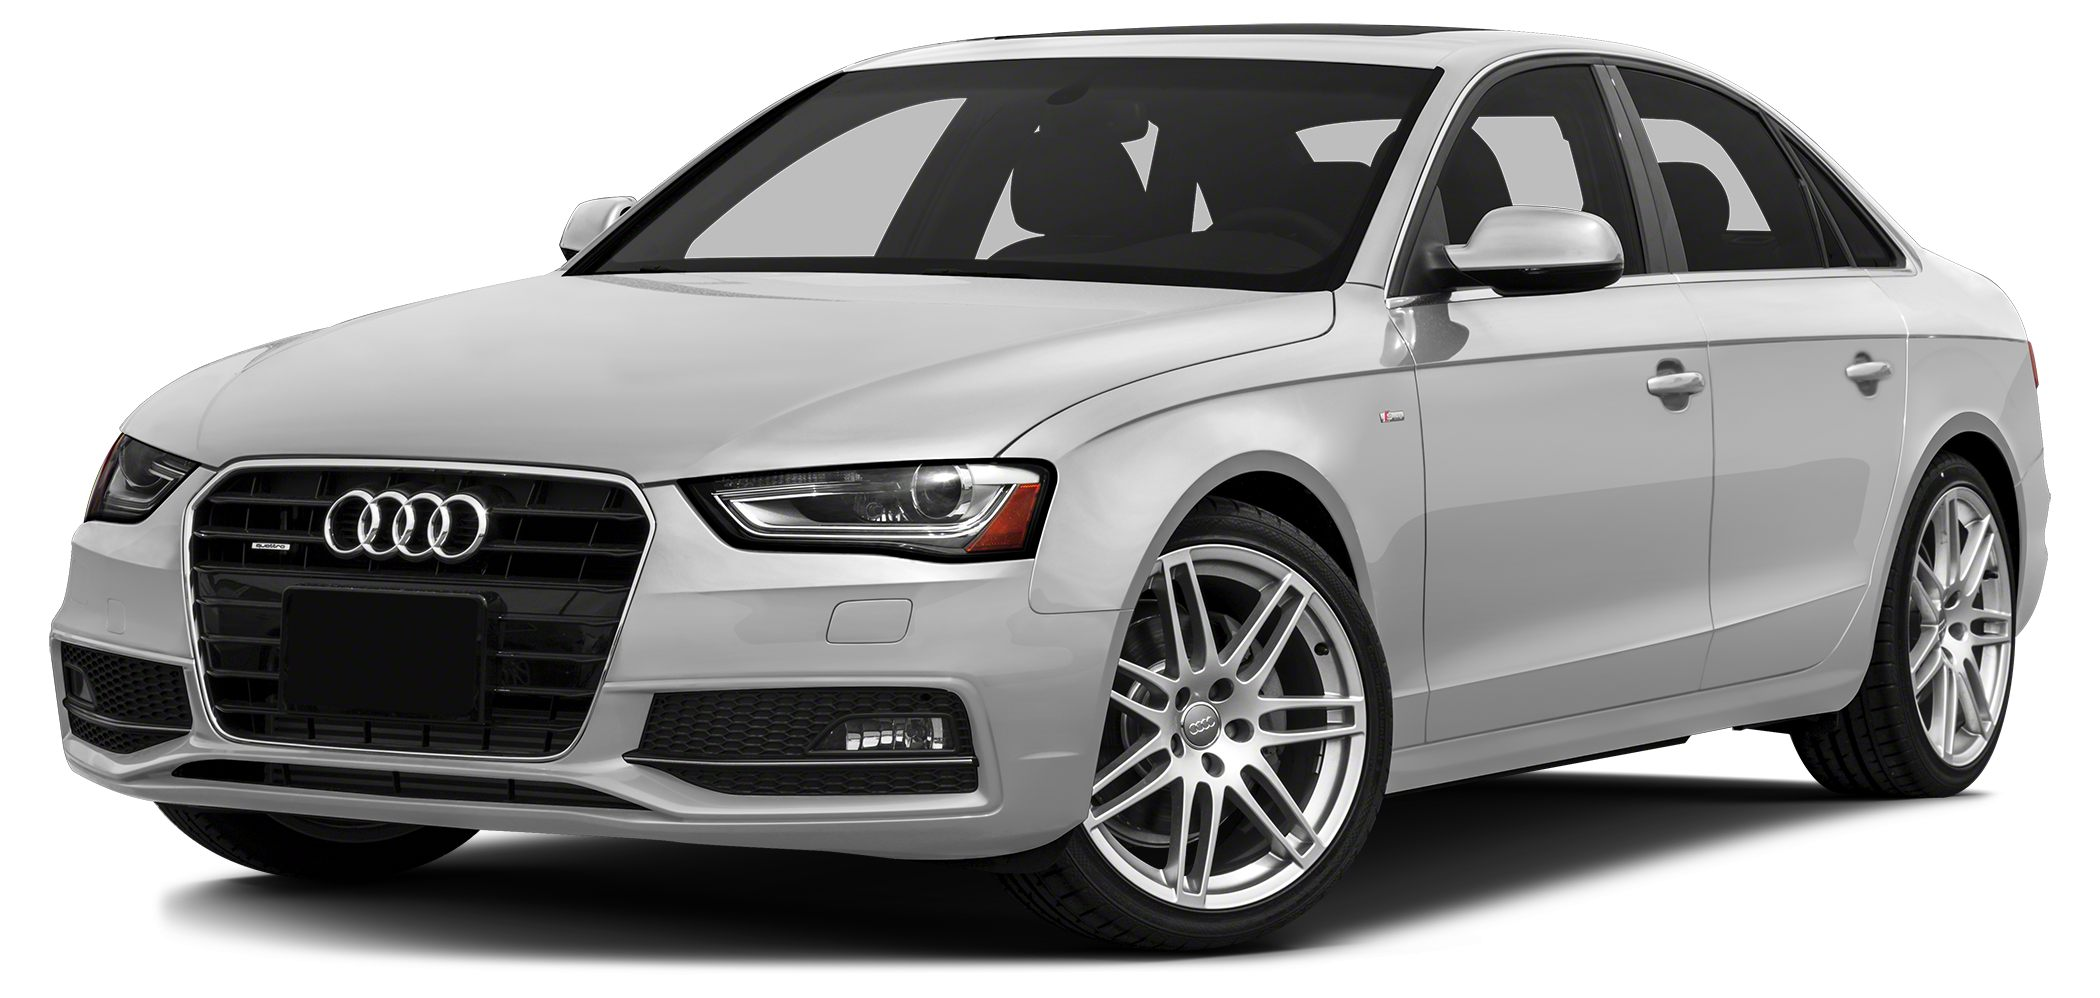 2015 Audi A4 20T quattro Premium New Price Sunroof  Moonroof Power Leather Seats Alloy Wheels